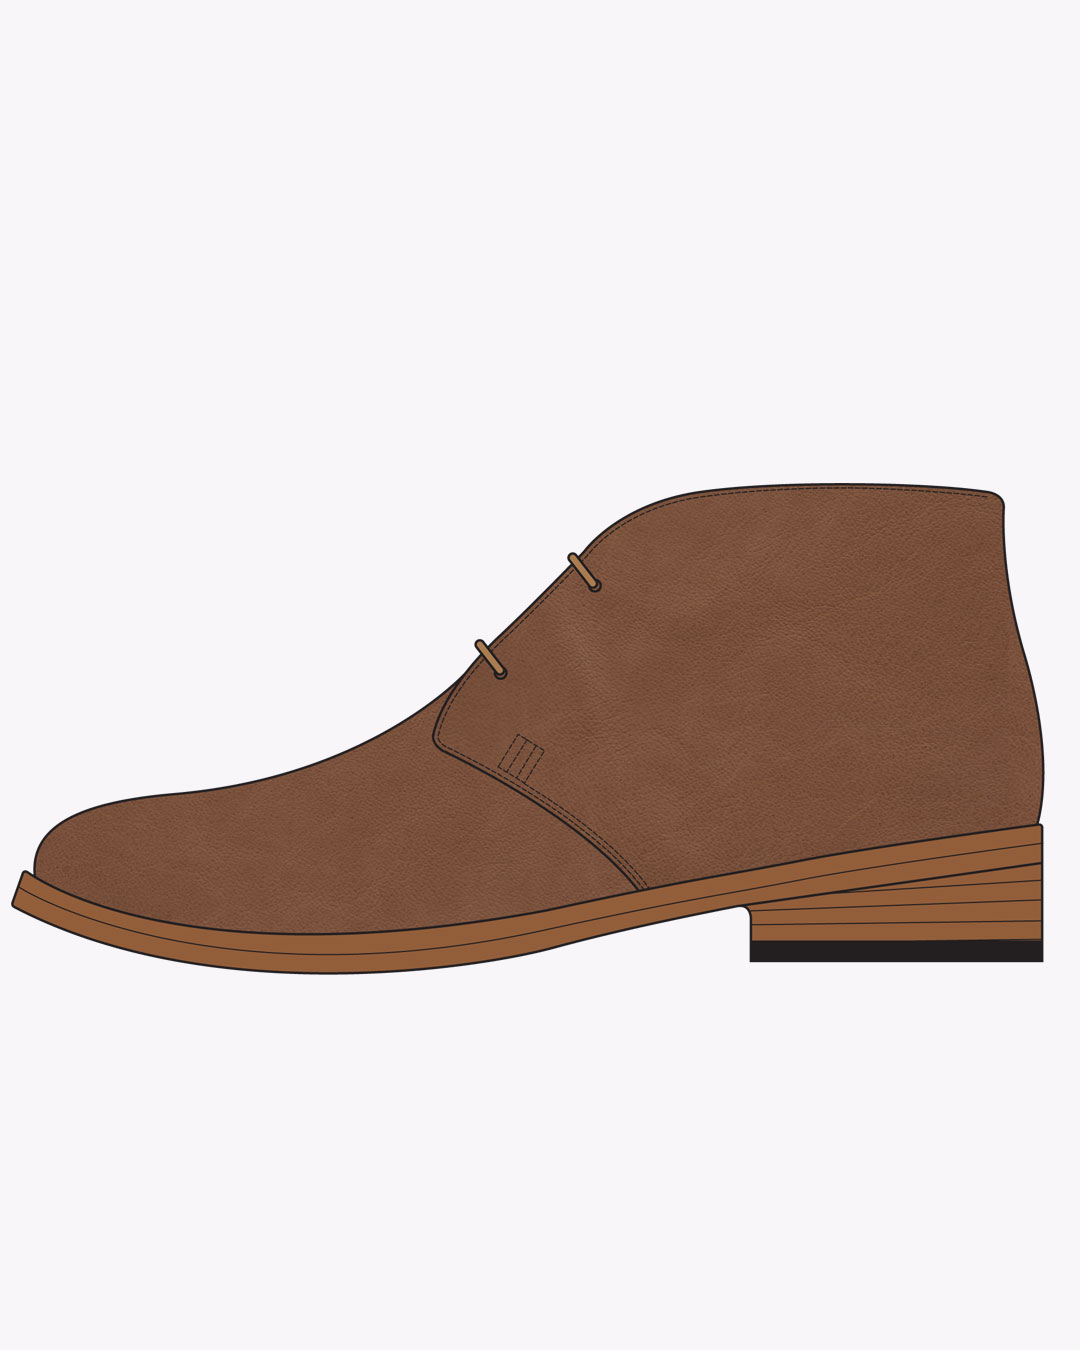 Nisolo Men's Chukka Boot